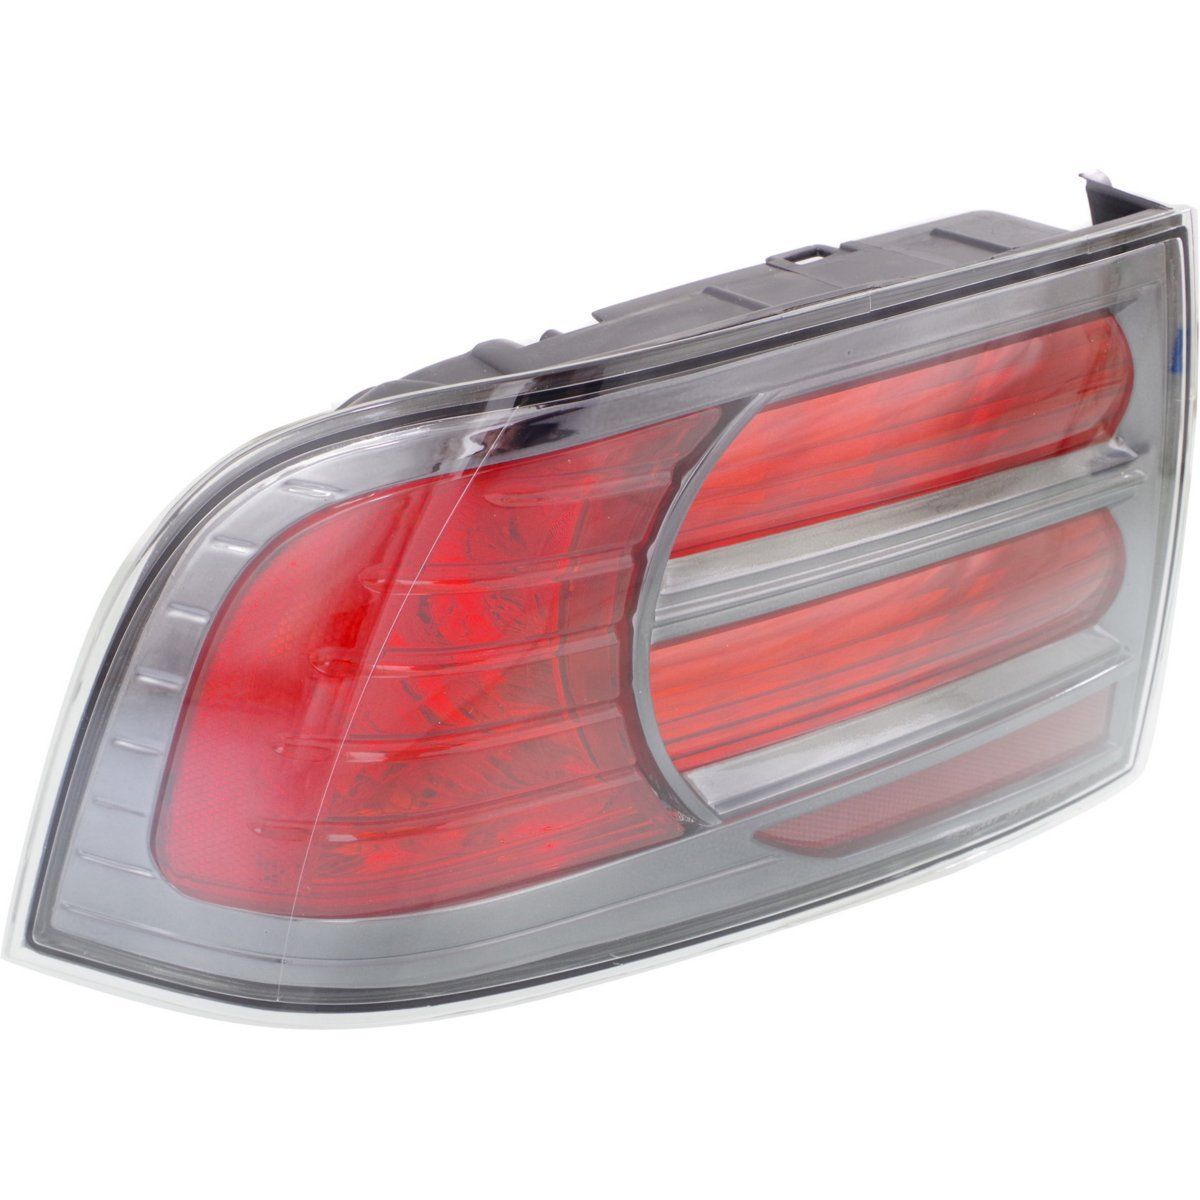 Halogen Tail Light For 2007-2008 Acura TL Type S Model